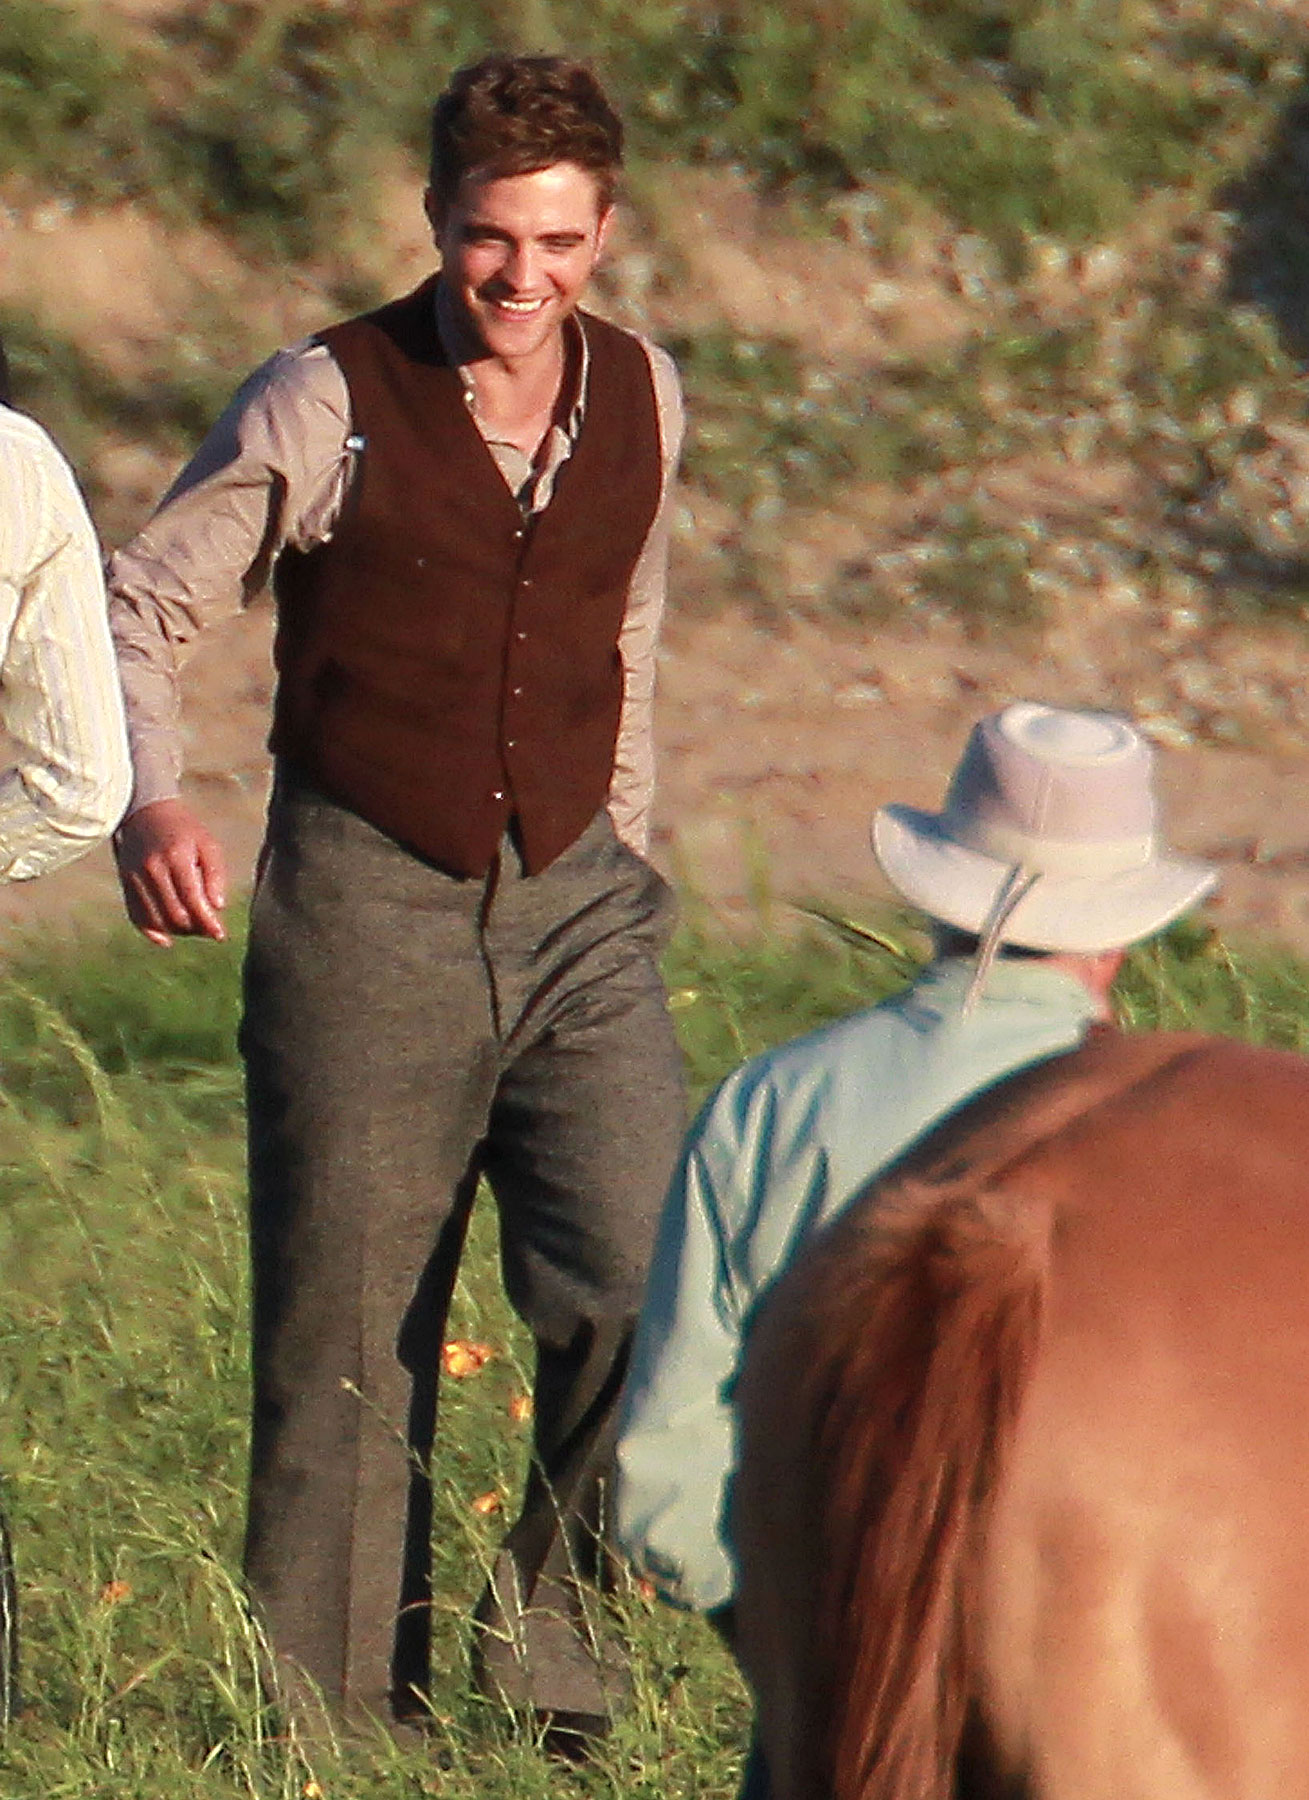 Robert Pattinson Rocks a Vest on 'Water for Elephants' Set (PHOTOS)